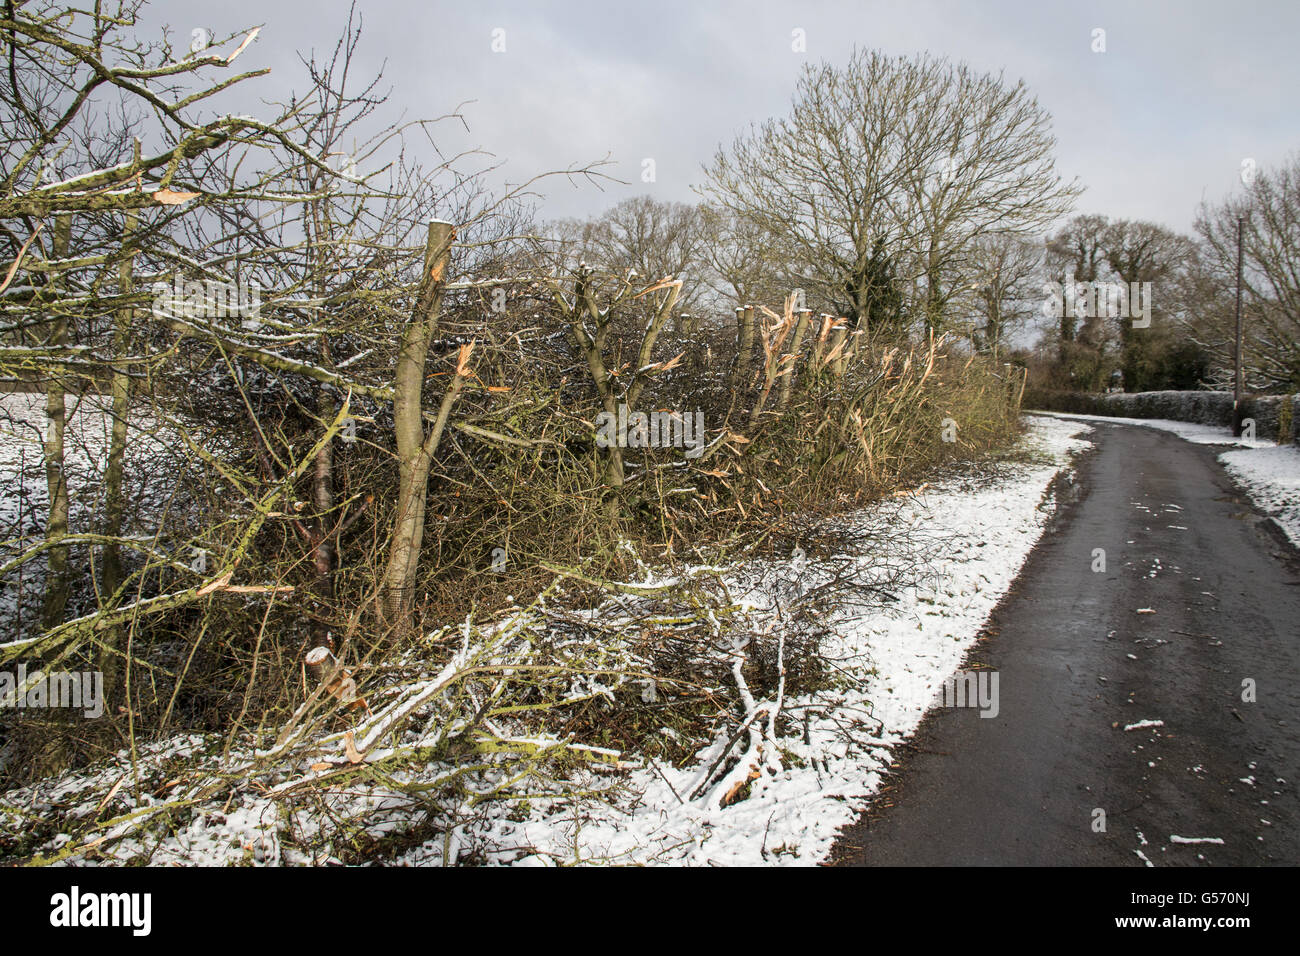 Badly flailed hedge - Stock Image